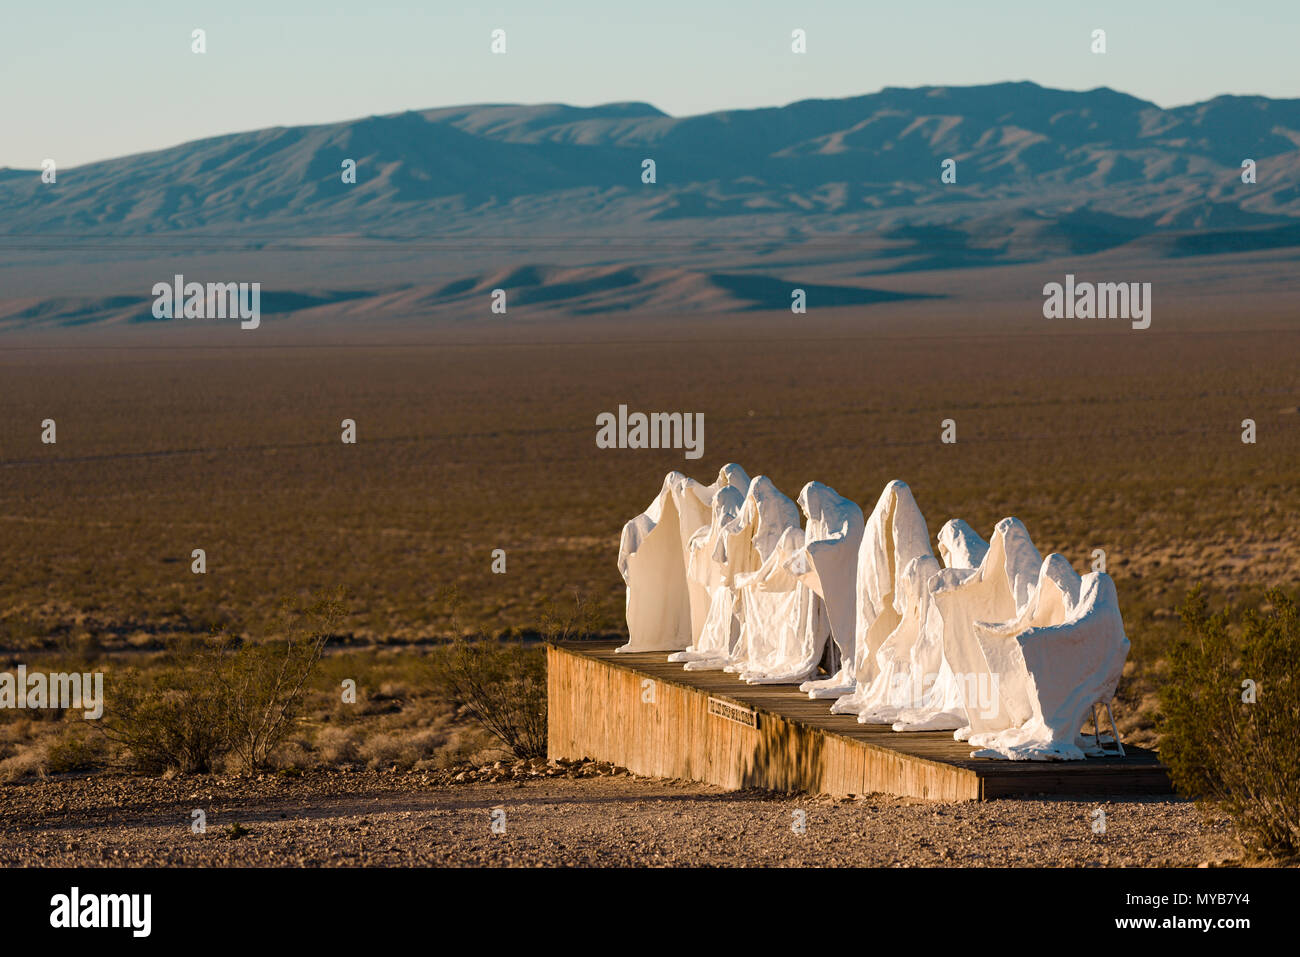 Last Supper sculpture art work in the Goldwell Open Air Museum in the ghost town of Rhyolite, Nevada, North America - Stock Image